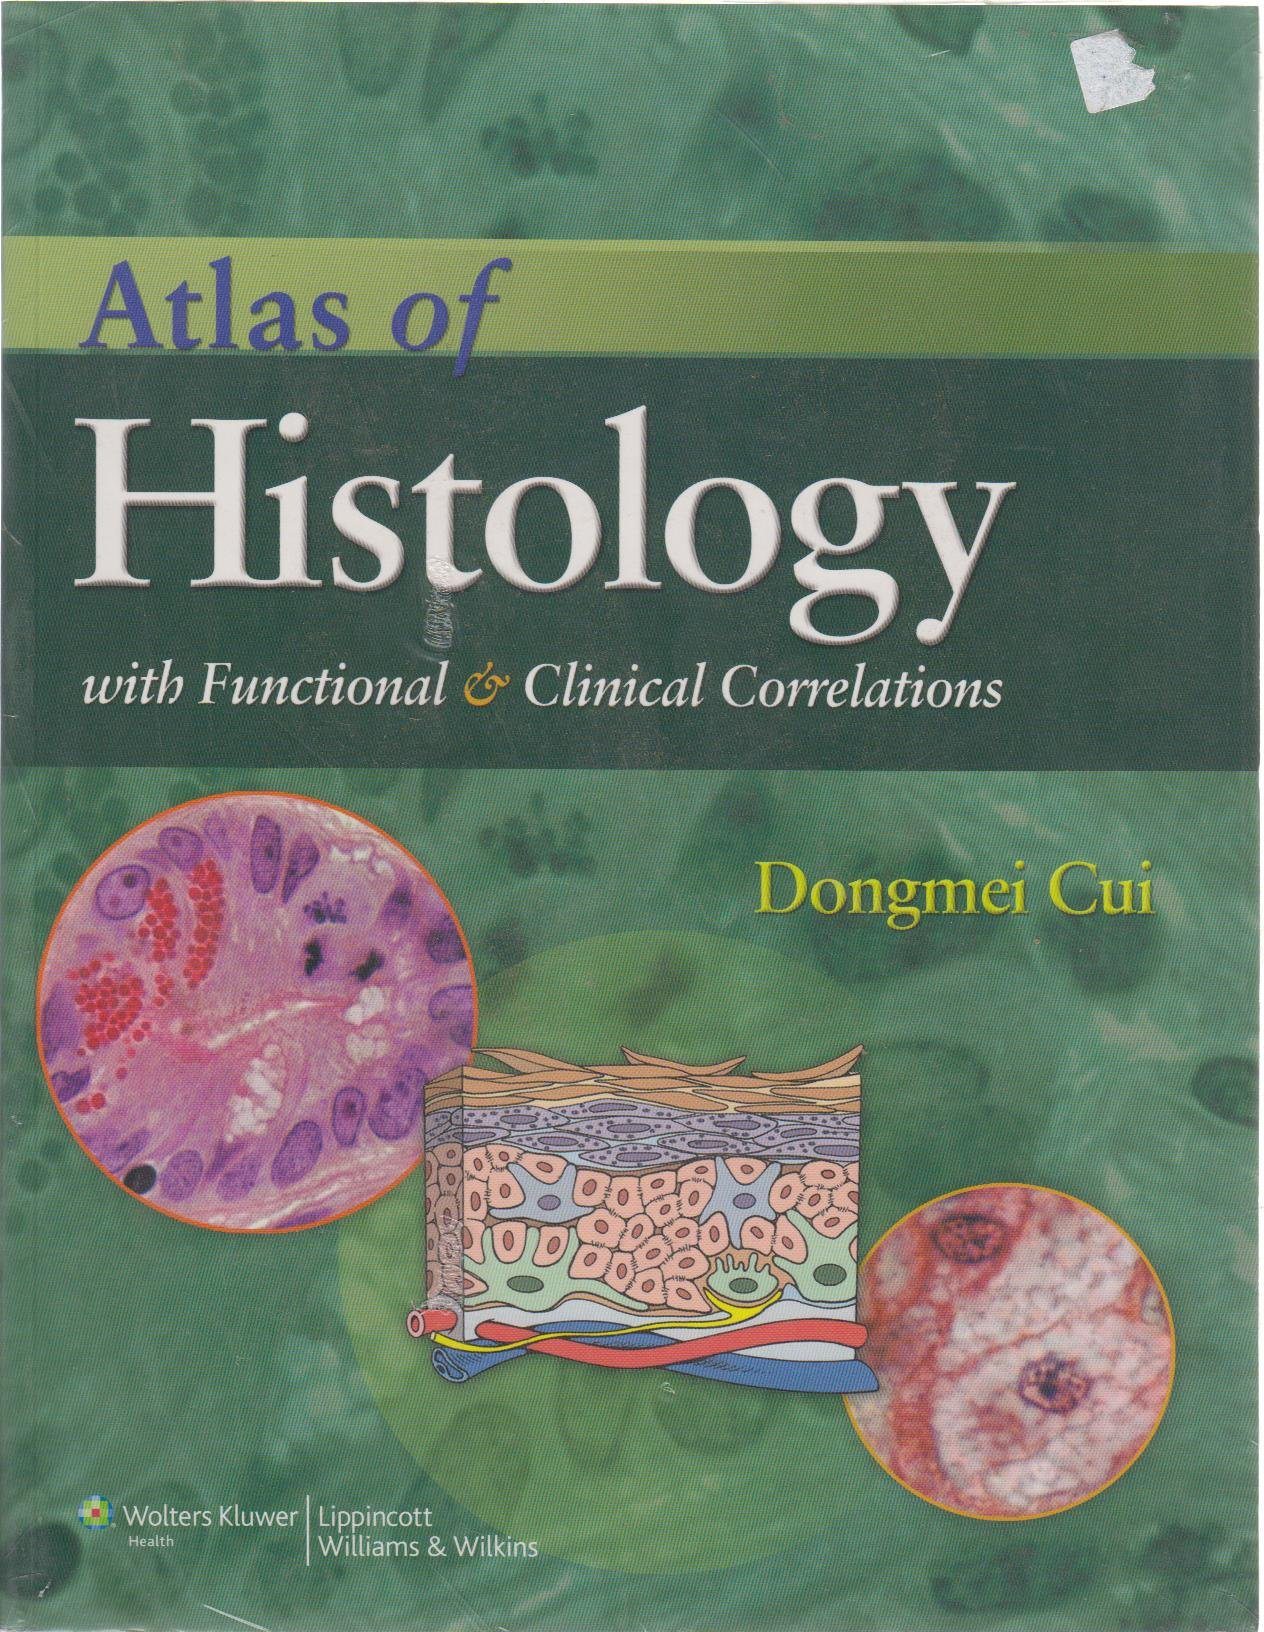 Atlas of Histology with Functional and Clinical Correlations | Books,  Stationery, Computers, Laptops and more. Buy online and get free delivery  on ...